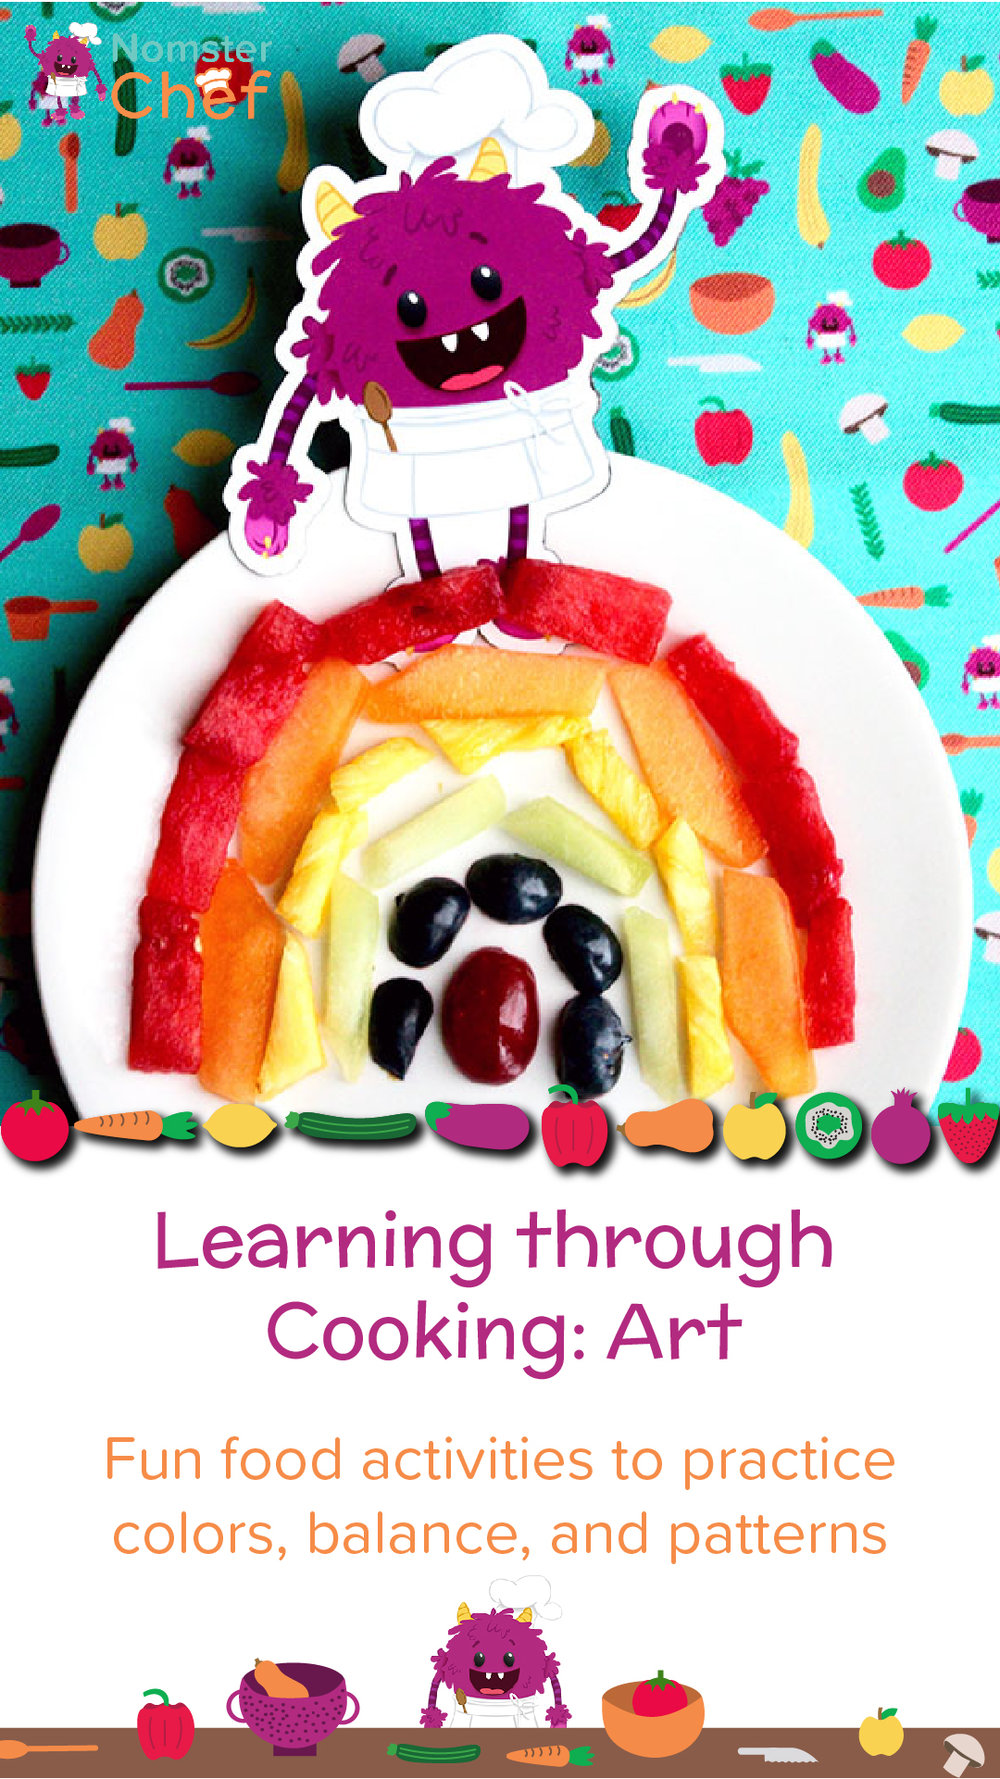 Learning through Cooking Art - Nomster Chef